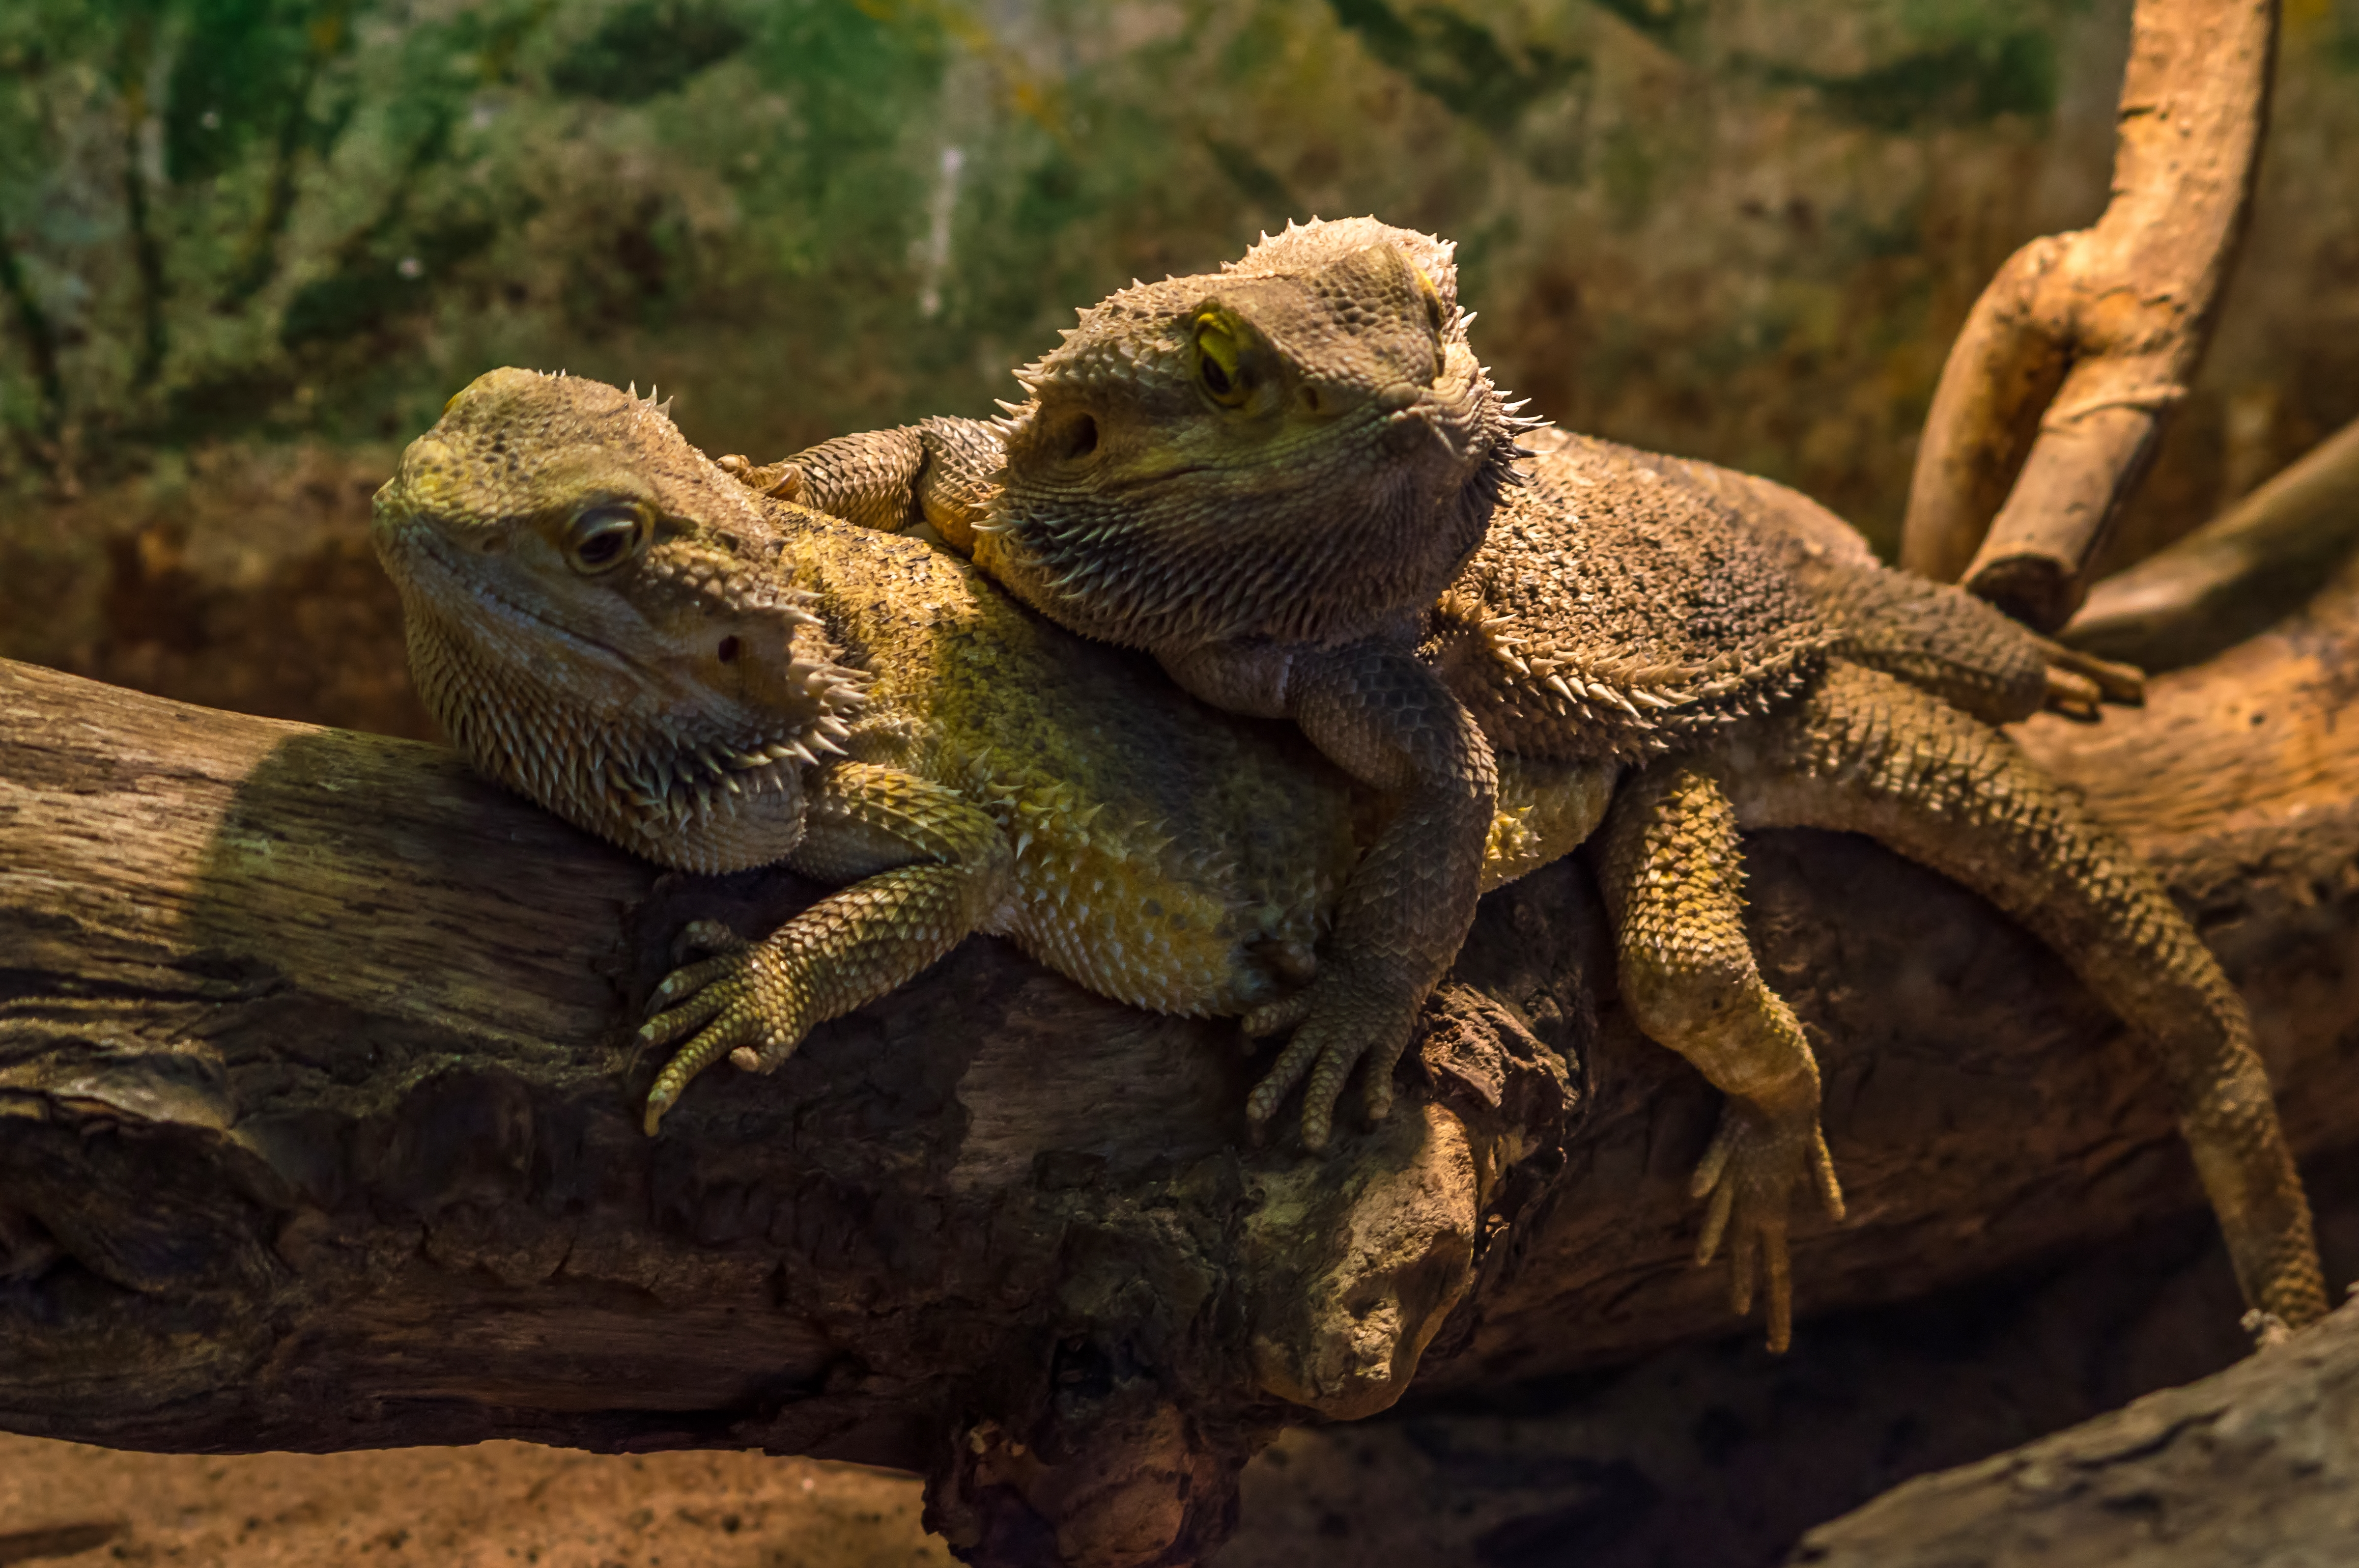 Two friendly Bearded Dragons